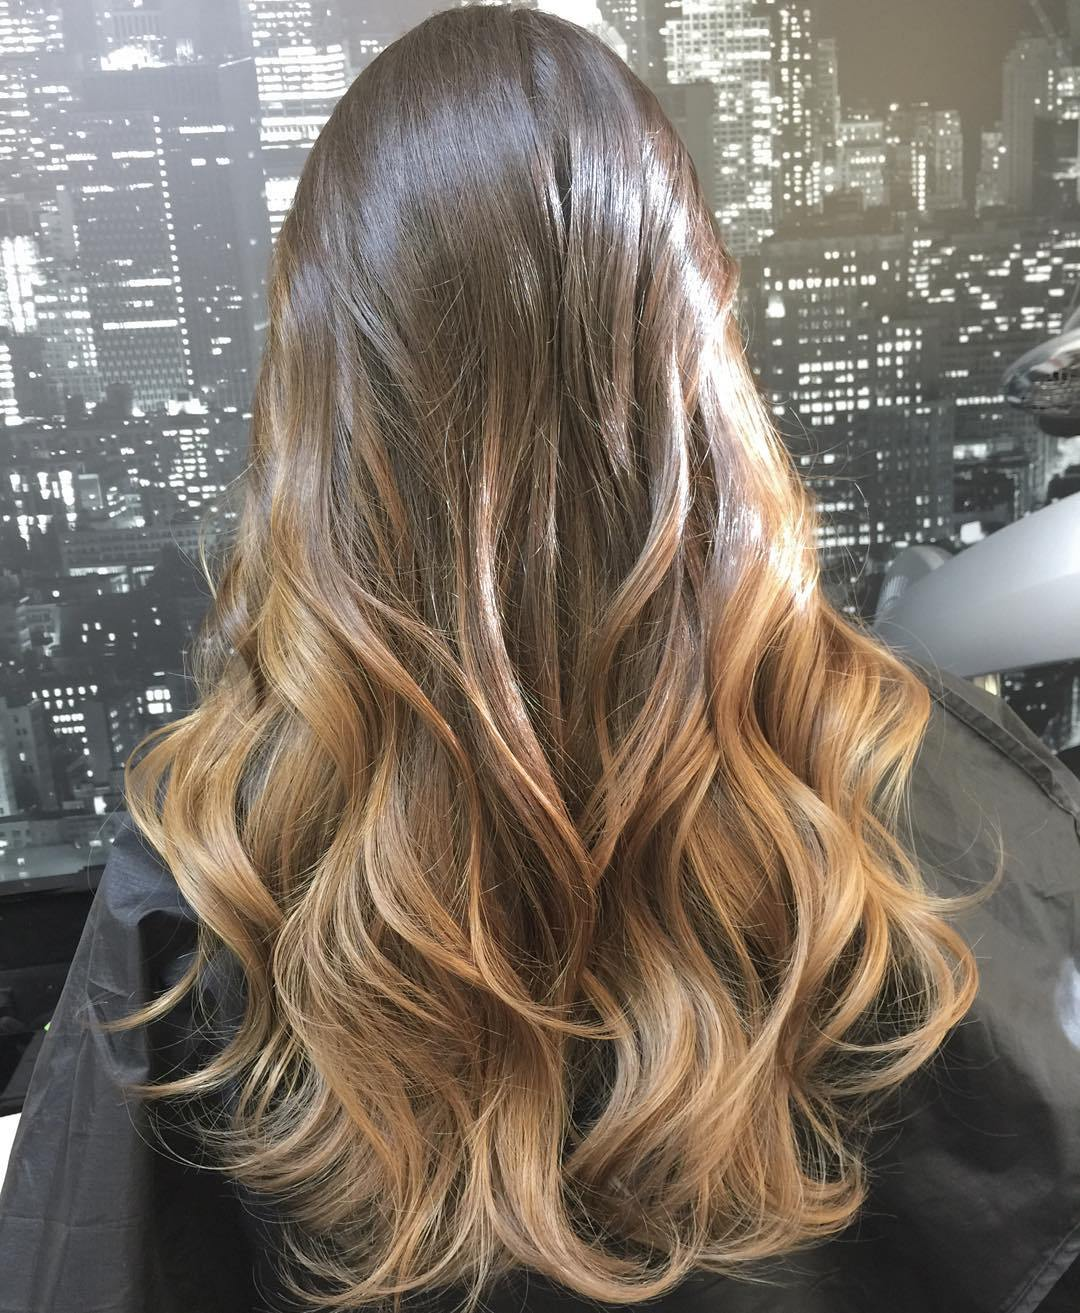 Best Advice on Ombre Hairstyles – Tips to Get You Started